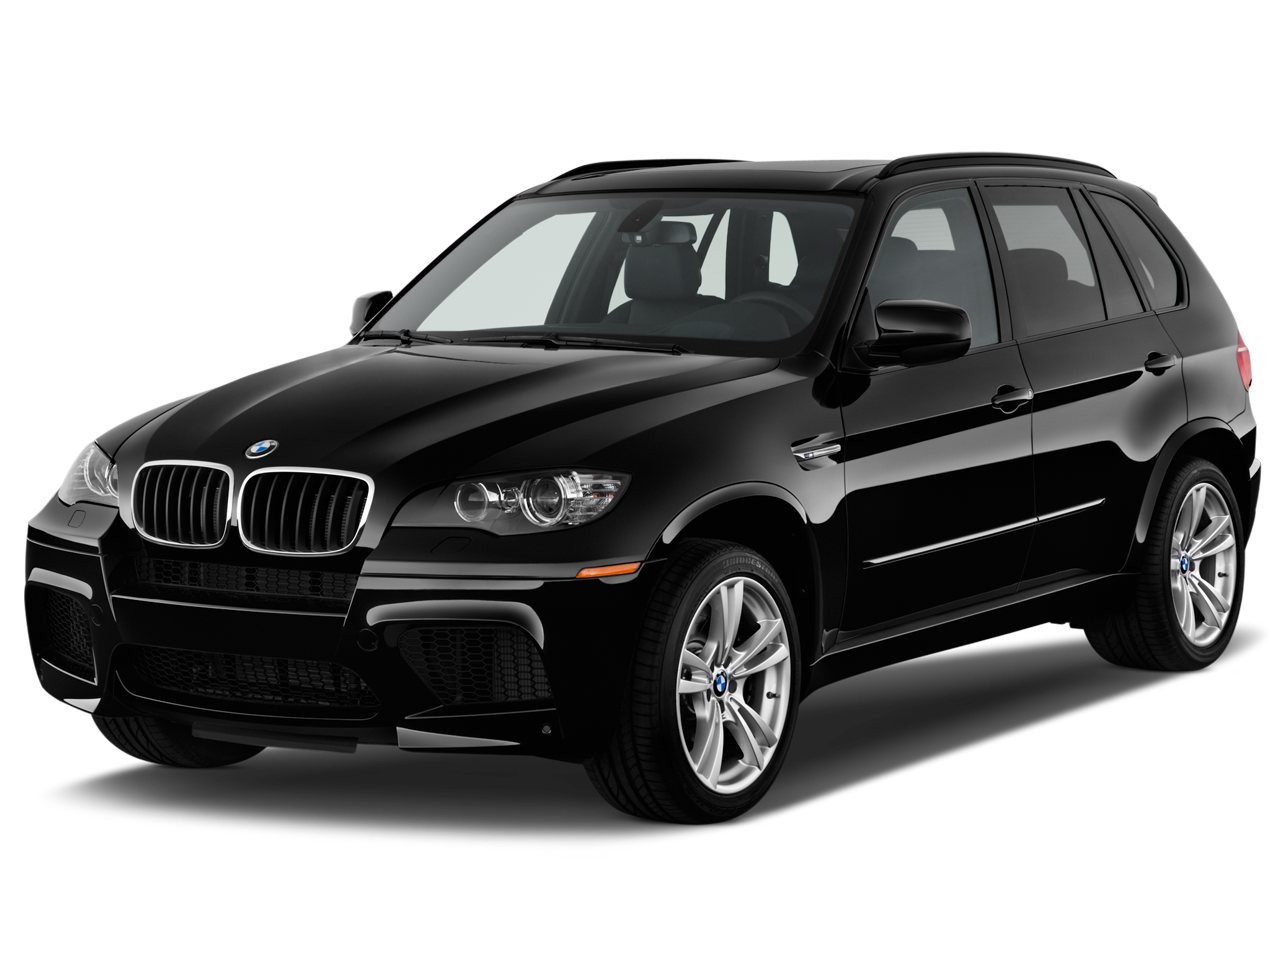 Bmw X5 Transparent Background PNG Image